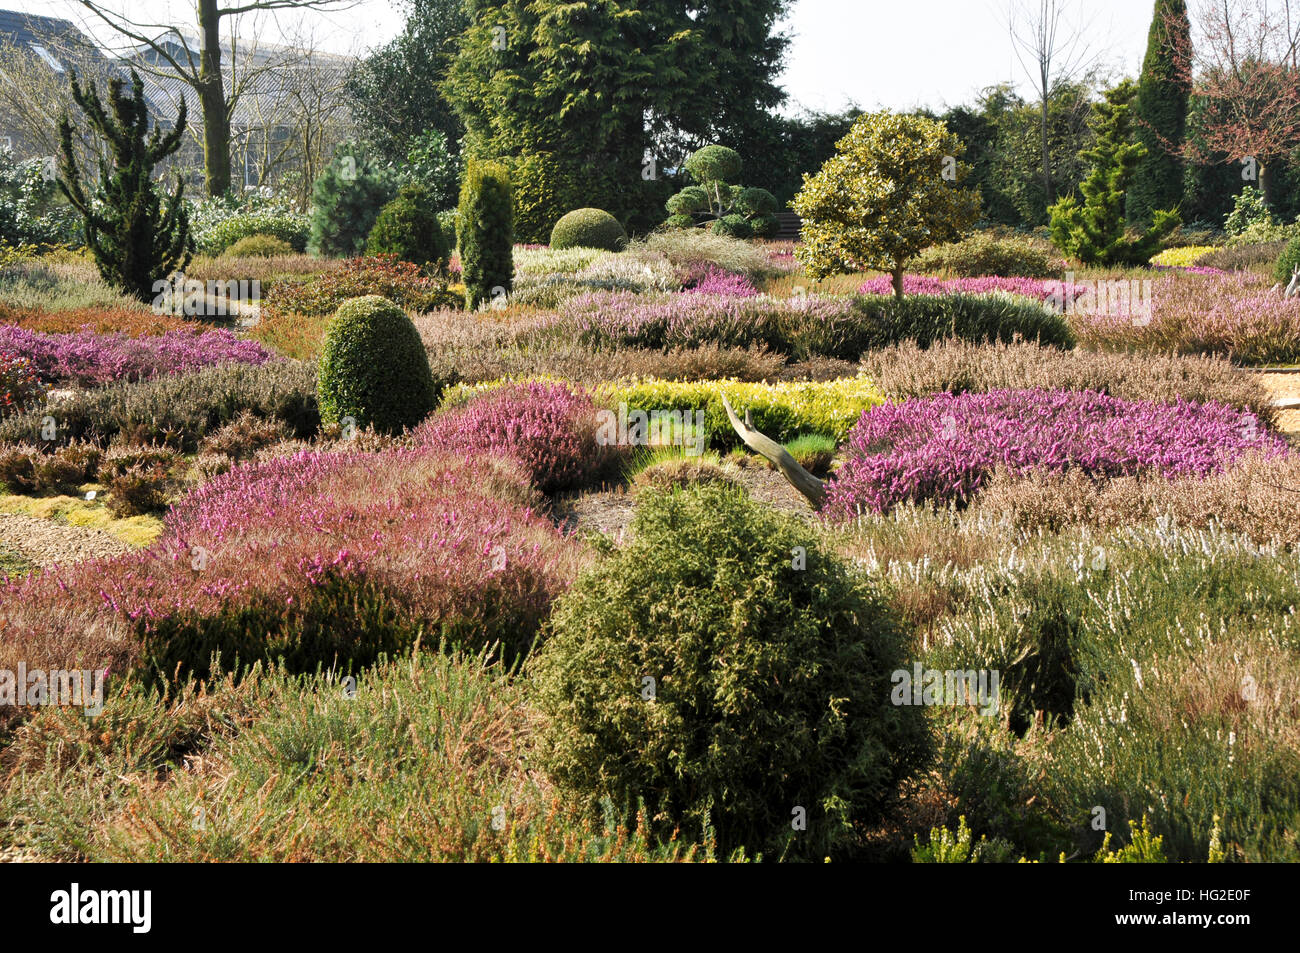 Large heather garden with flowering heathers and conifers - Stock Image